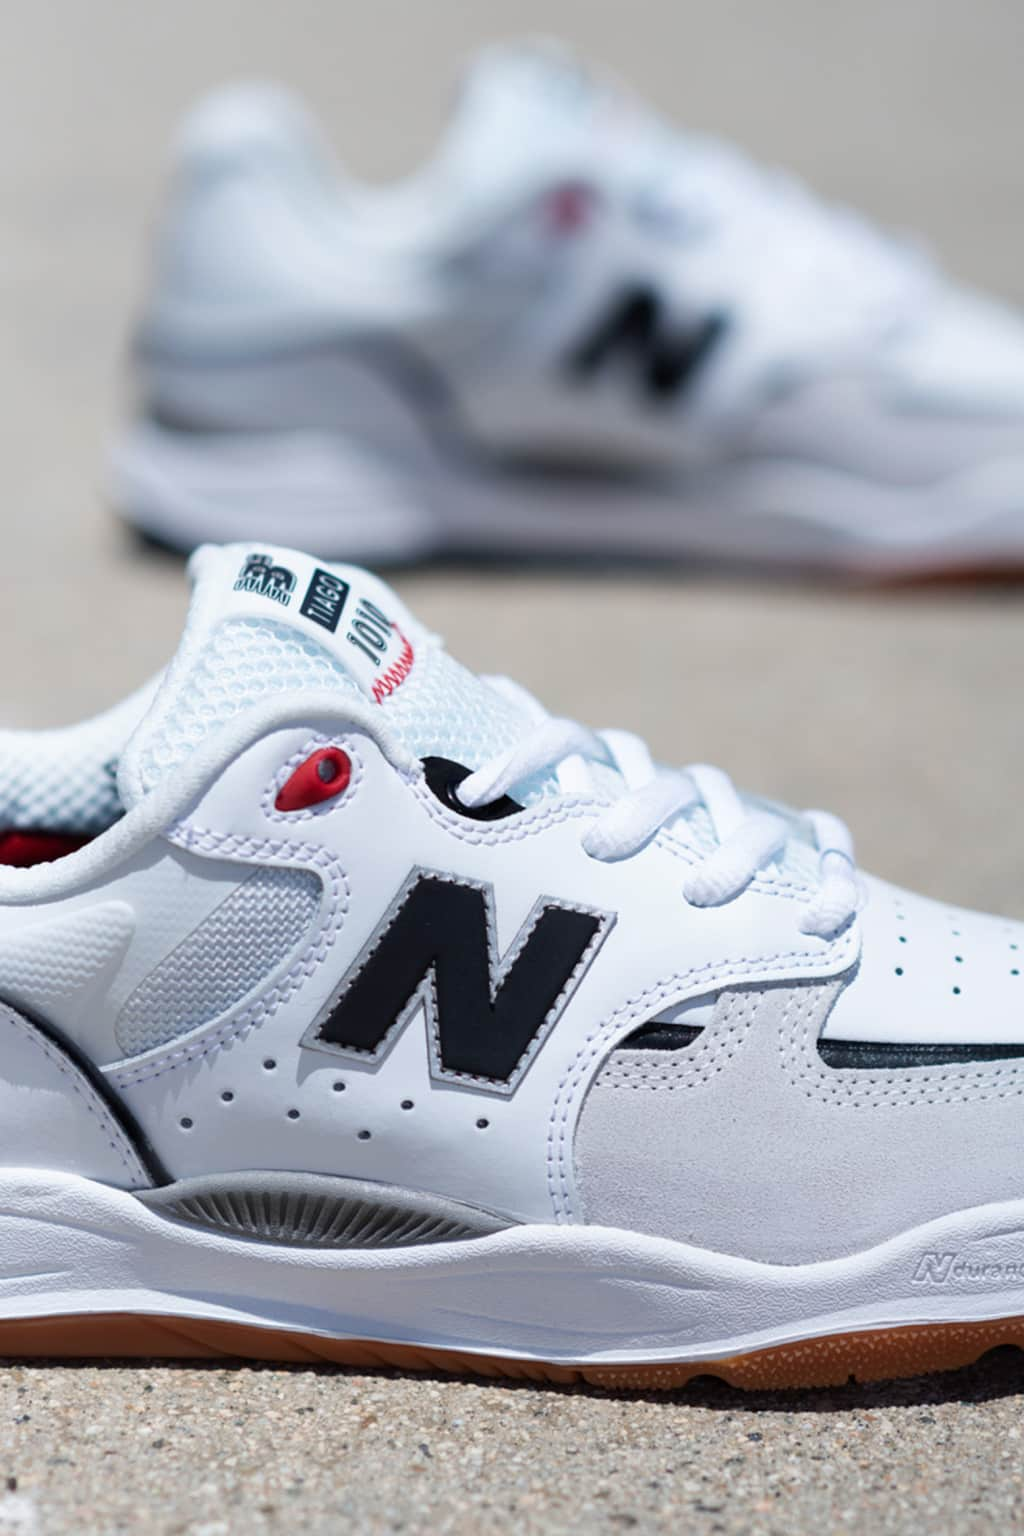 90s Inspired: The NB Tiago 1010